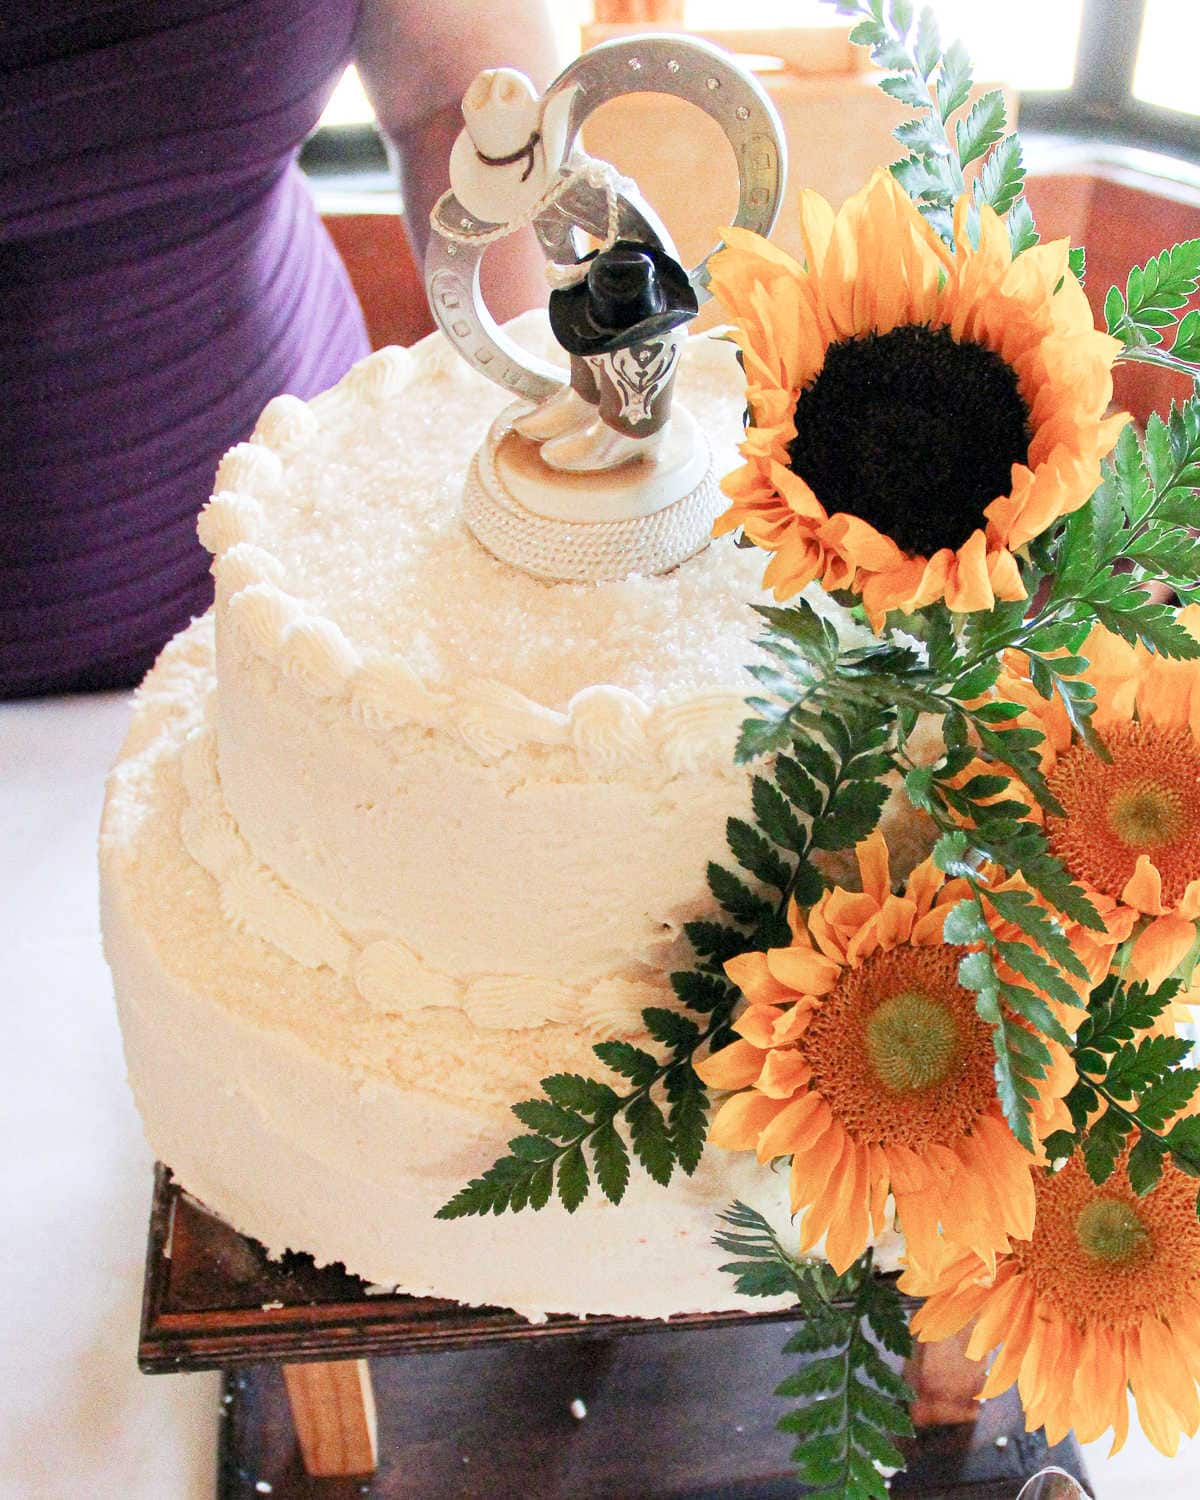 A wedding cake made from this recipe.